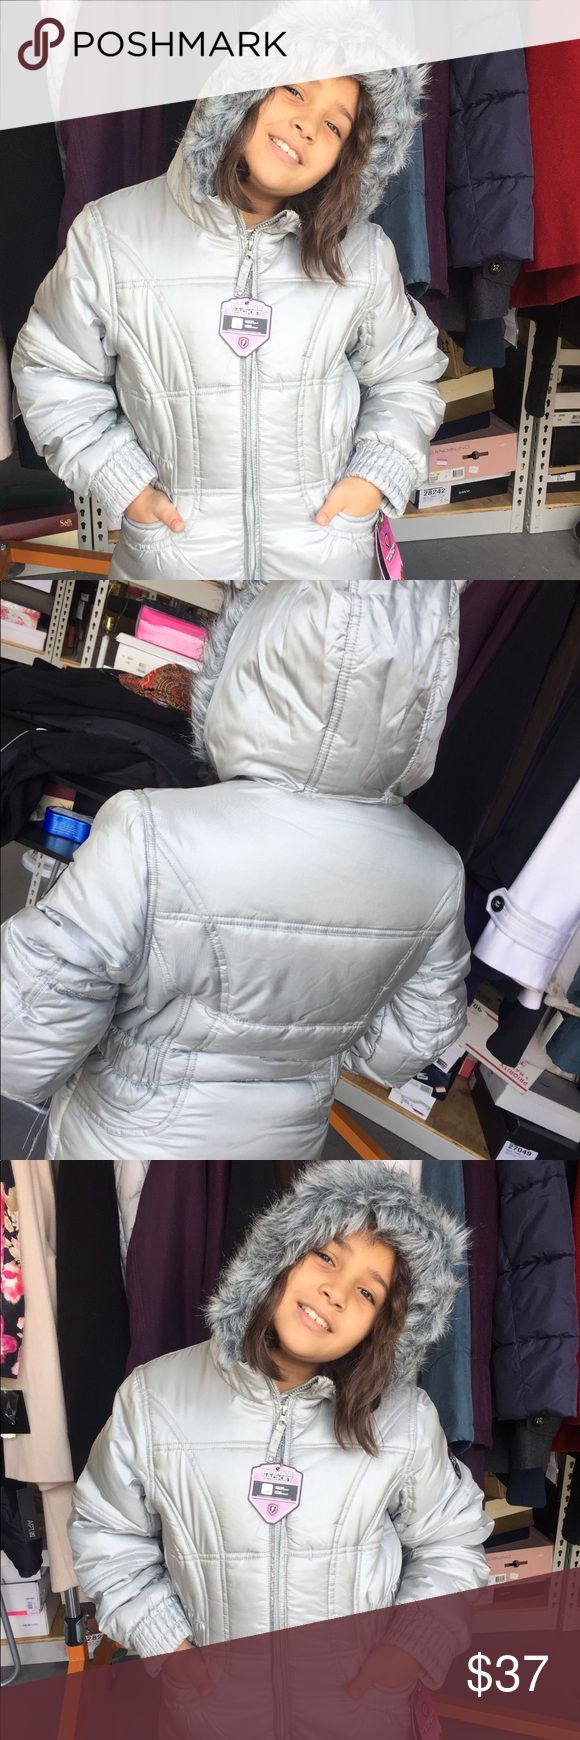 Girls puffer coat. New with tag Silver little girls puffer coat. Retails $75.00. Sizes 2,3,4,5,6,6X, 16. Faux fur hood. Zipper. Pockets. Jackets & Coats Puffers